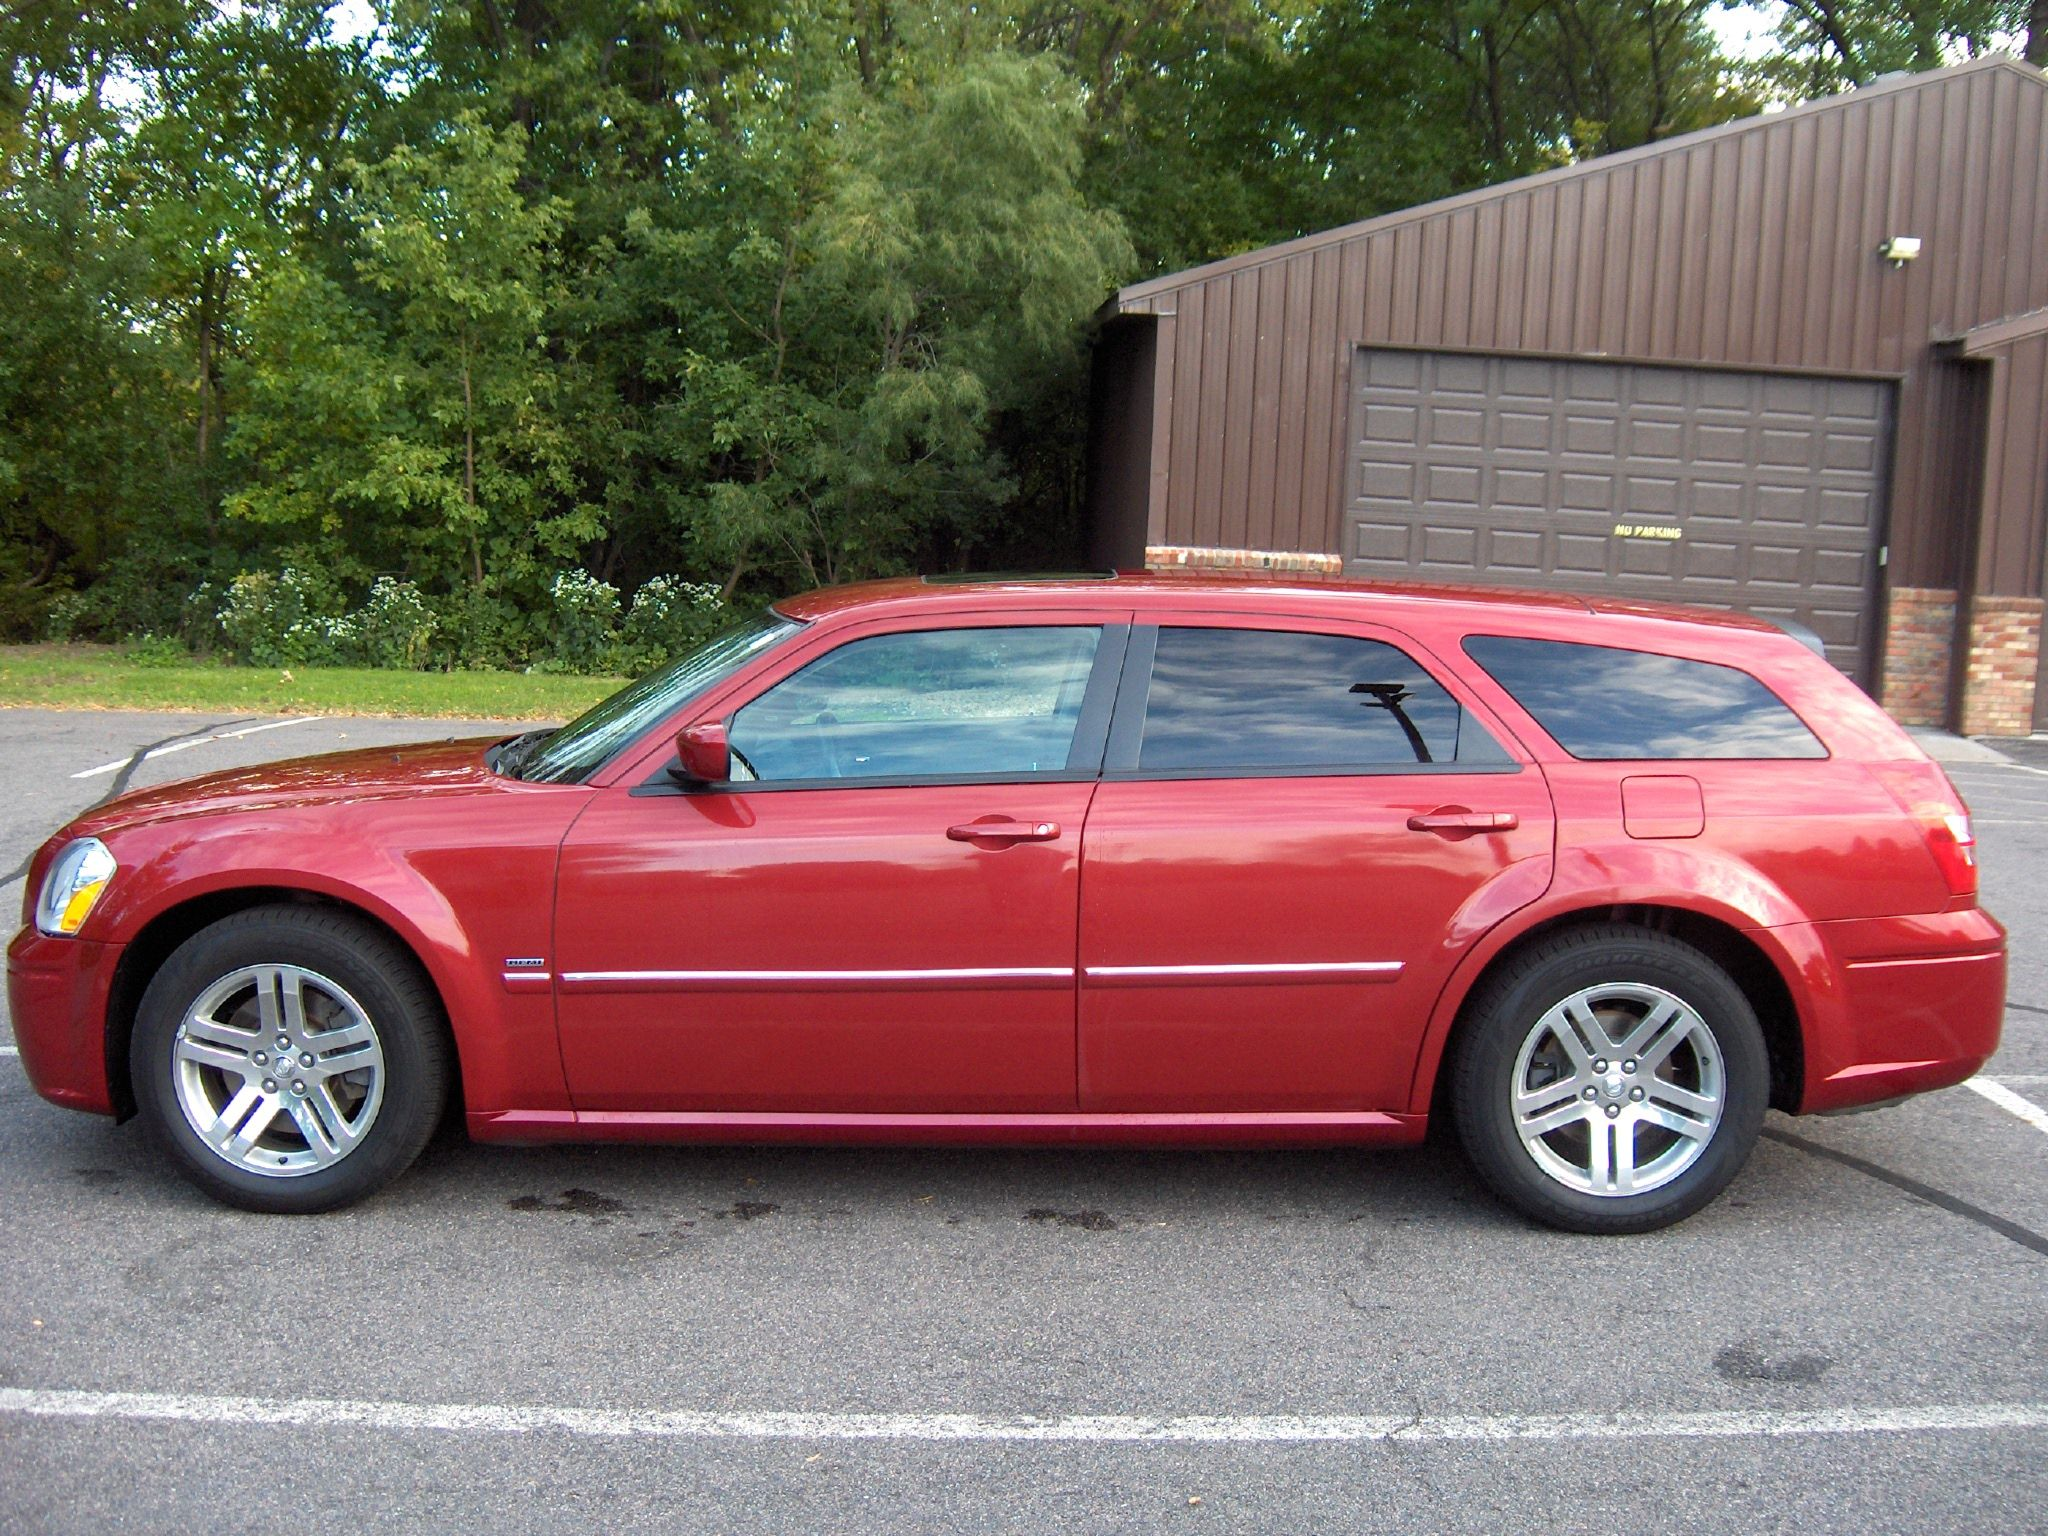 2007 dodge magnum wish these were still being made me too buddy